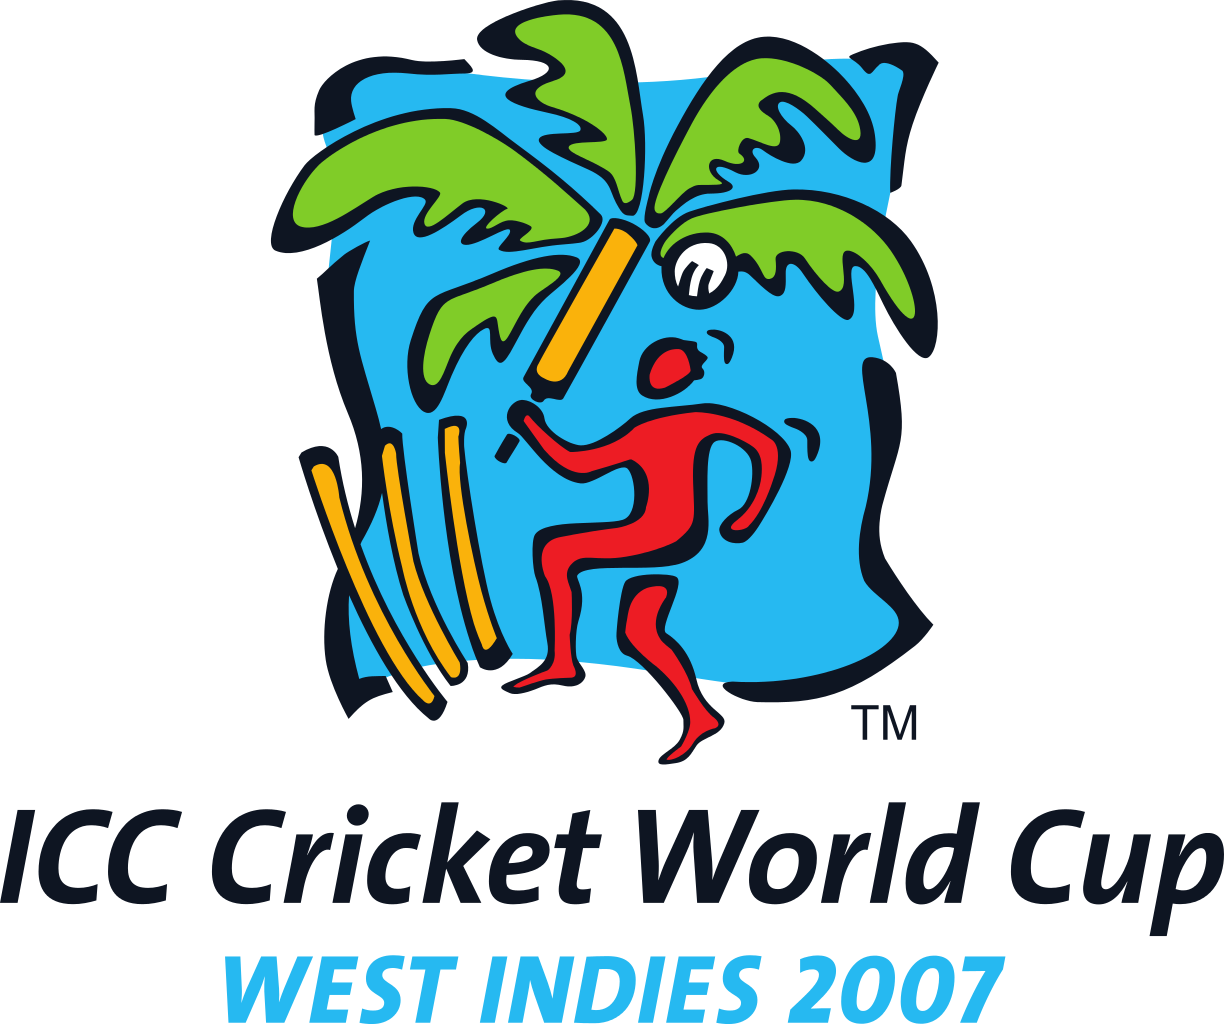 These Cricket World Cup Logos From The Past Will Make You Very Nostalgic Cricket Logo Cricket World Cup World Cup Logo